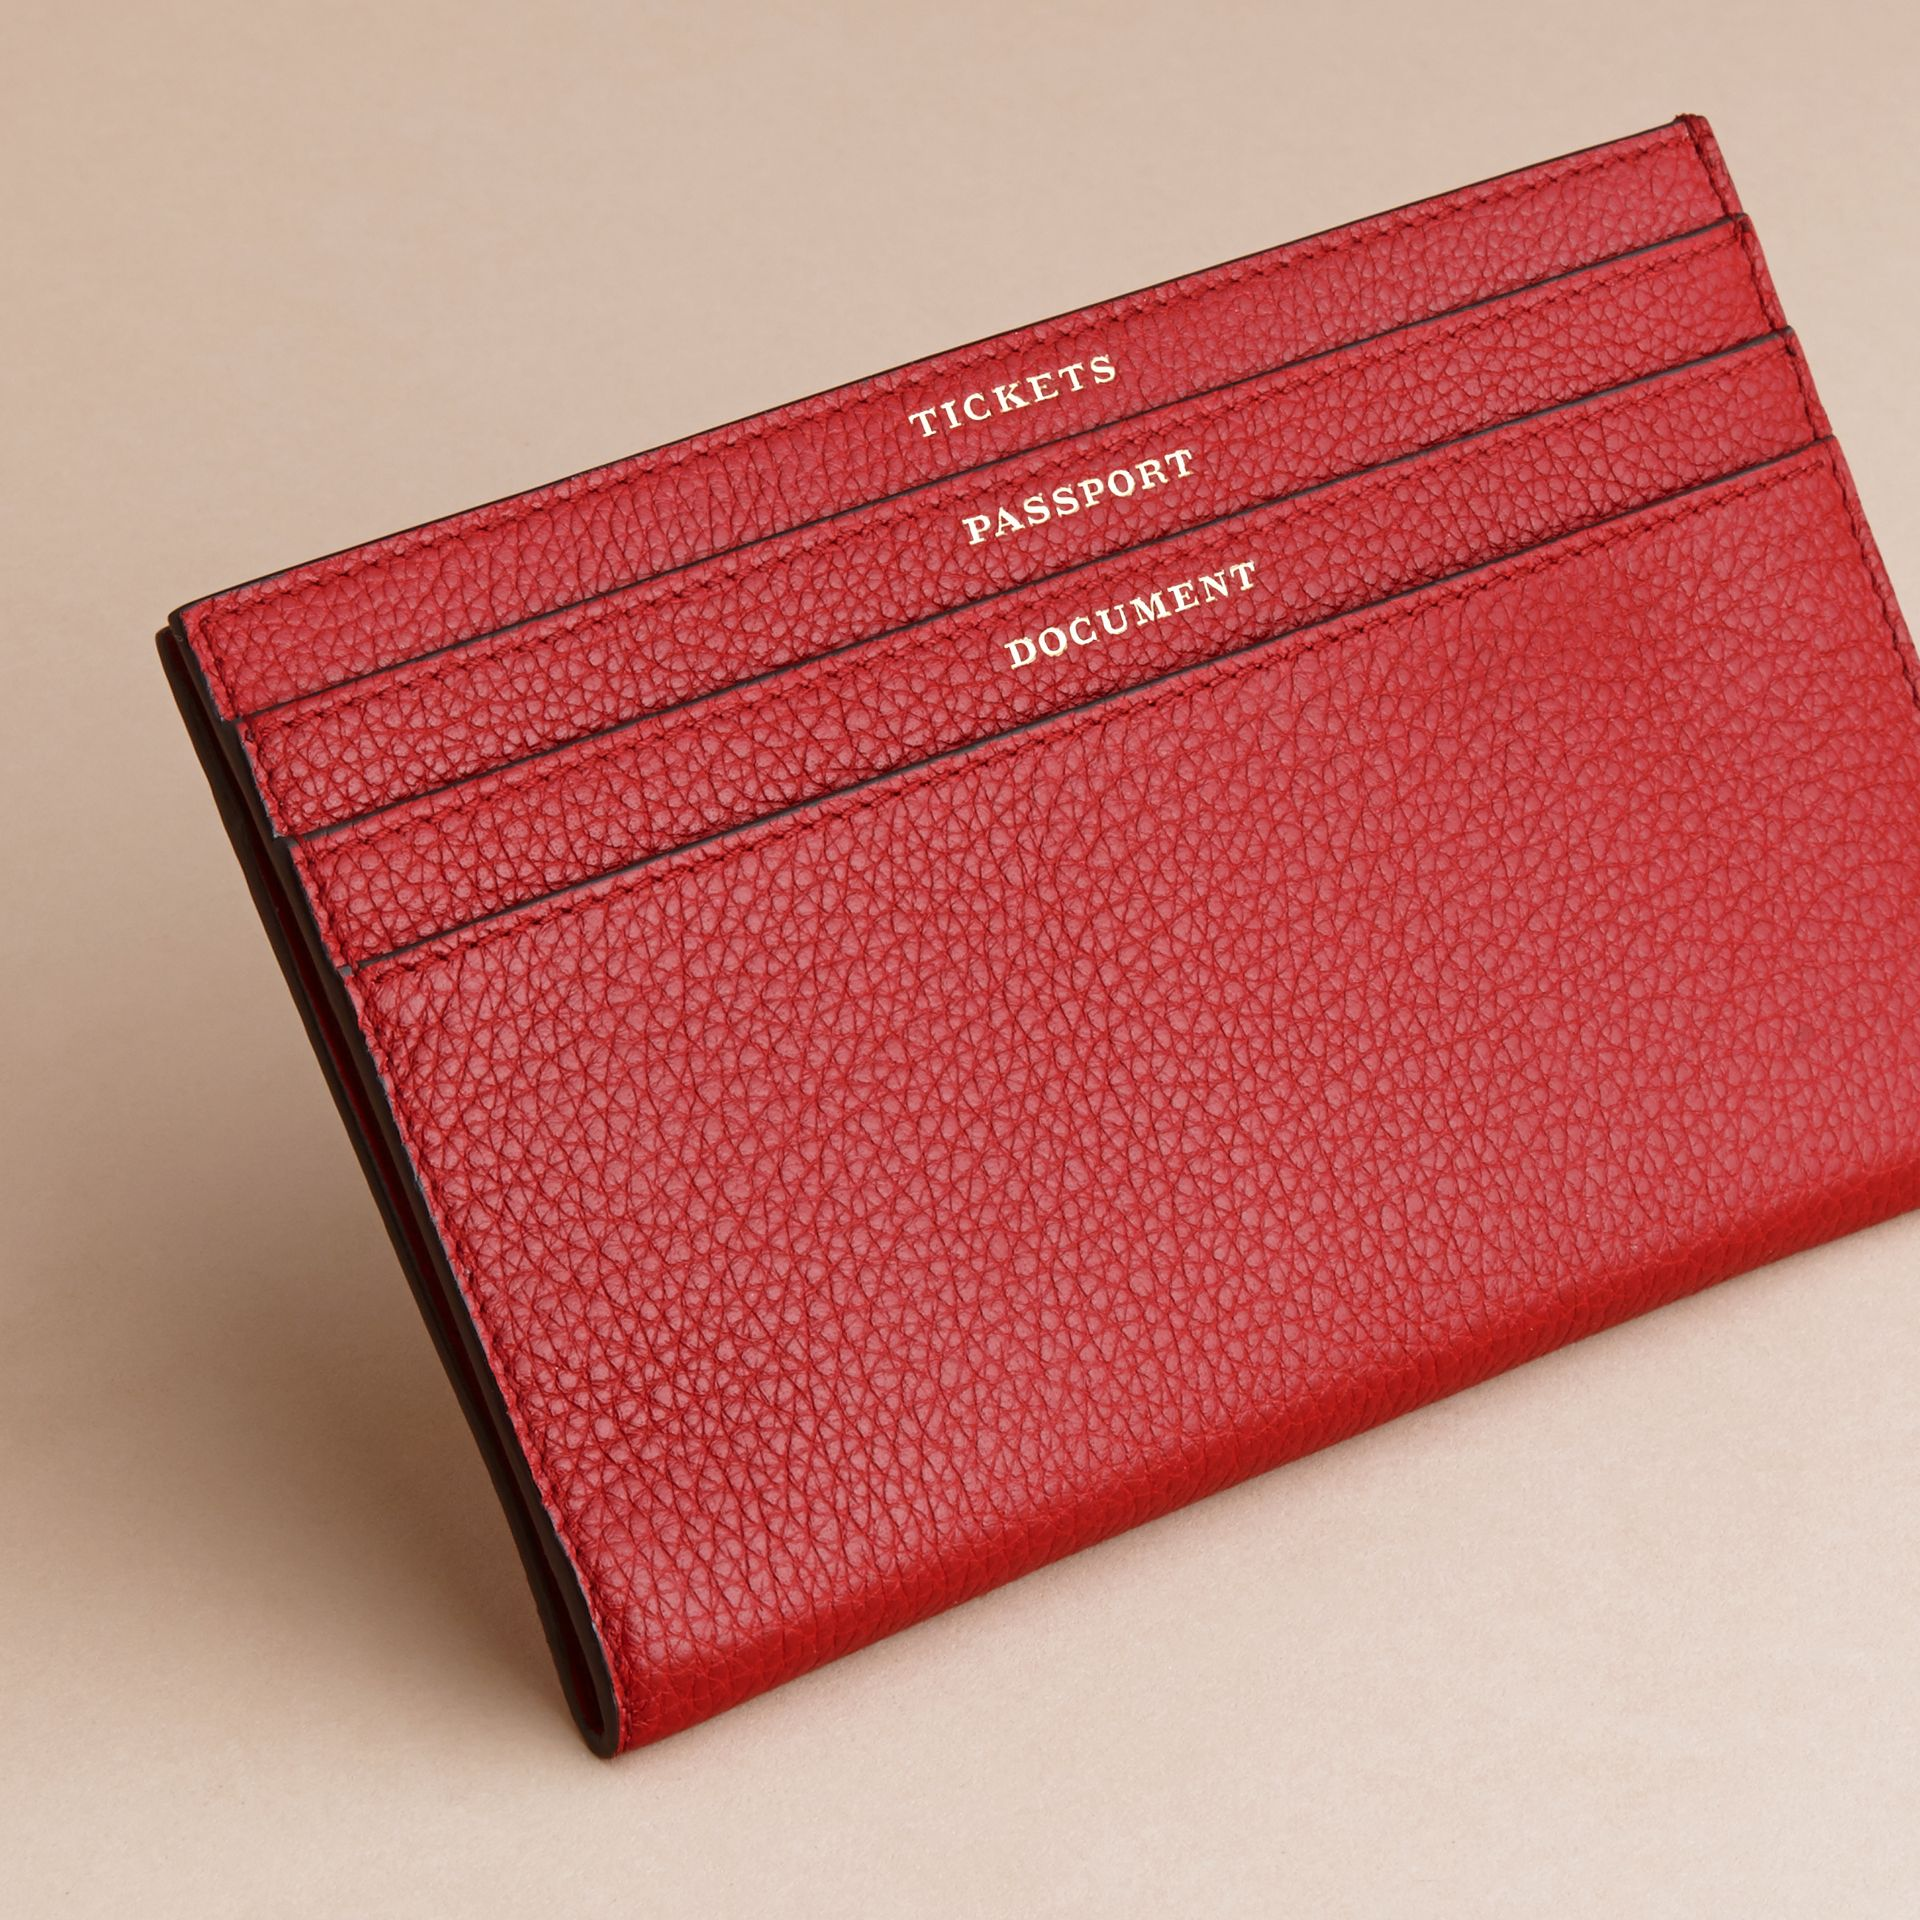 Grainy Leather Travel Case in Parade Red - Women | Burberry - gallery image 3